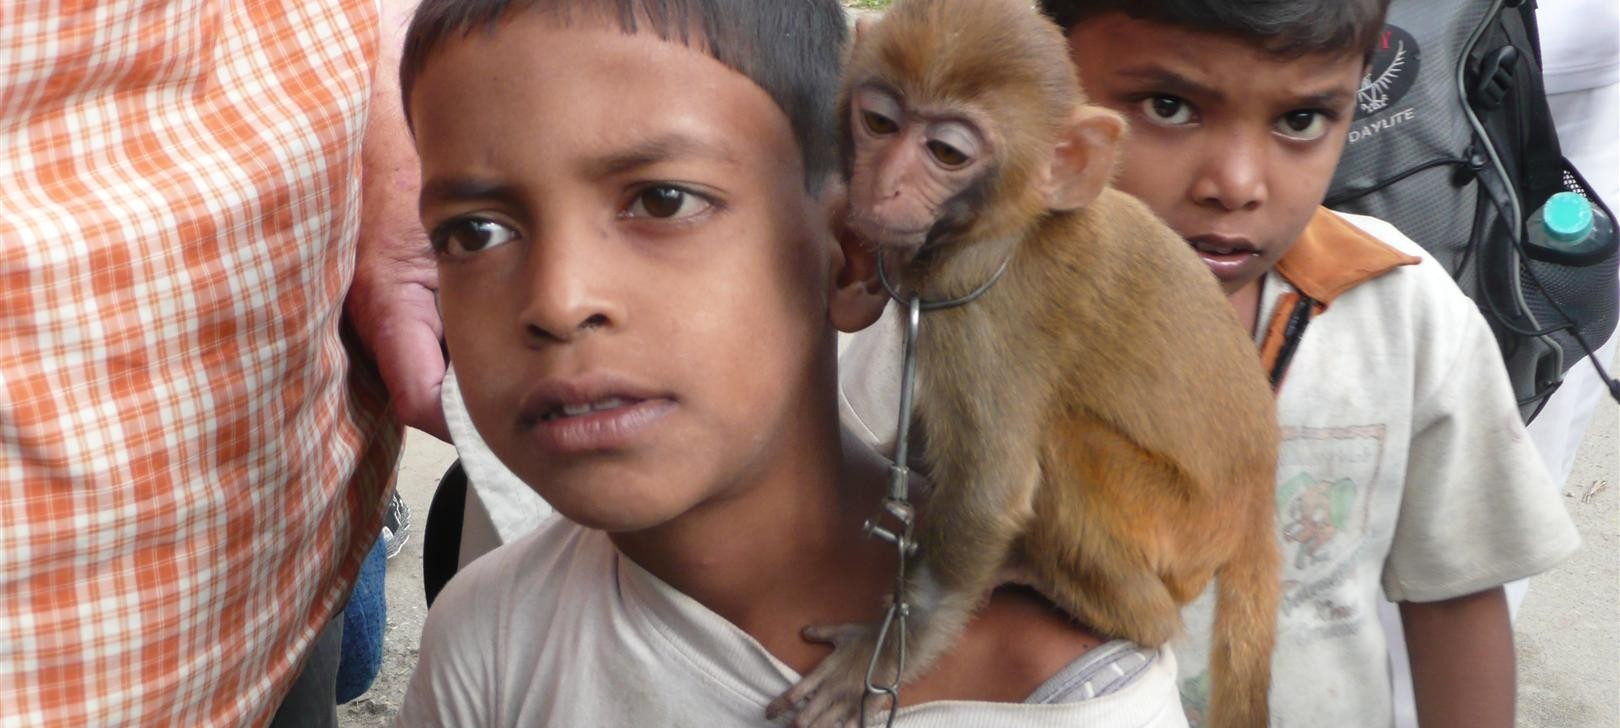 boy and monkey (photo by Dick Sakahara)